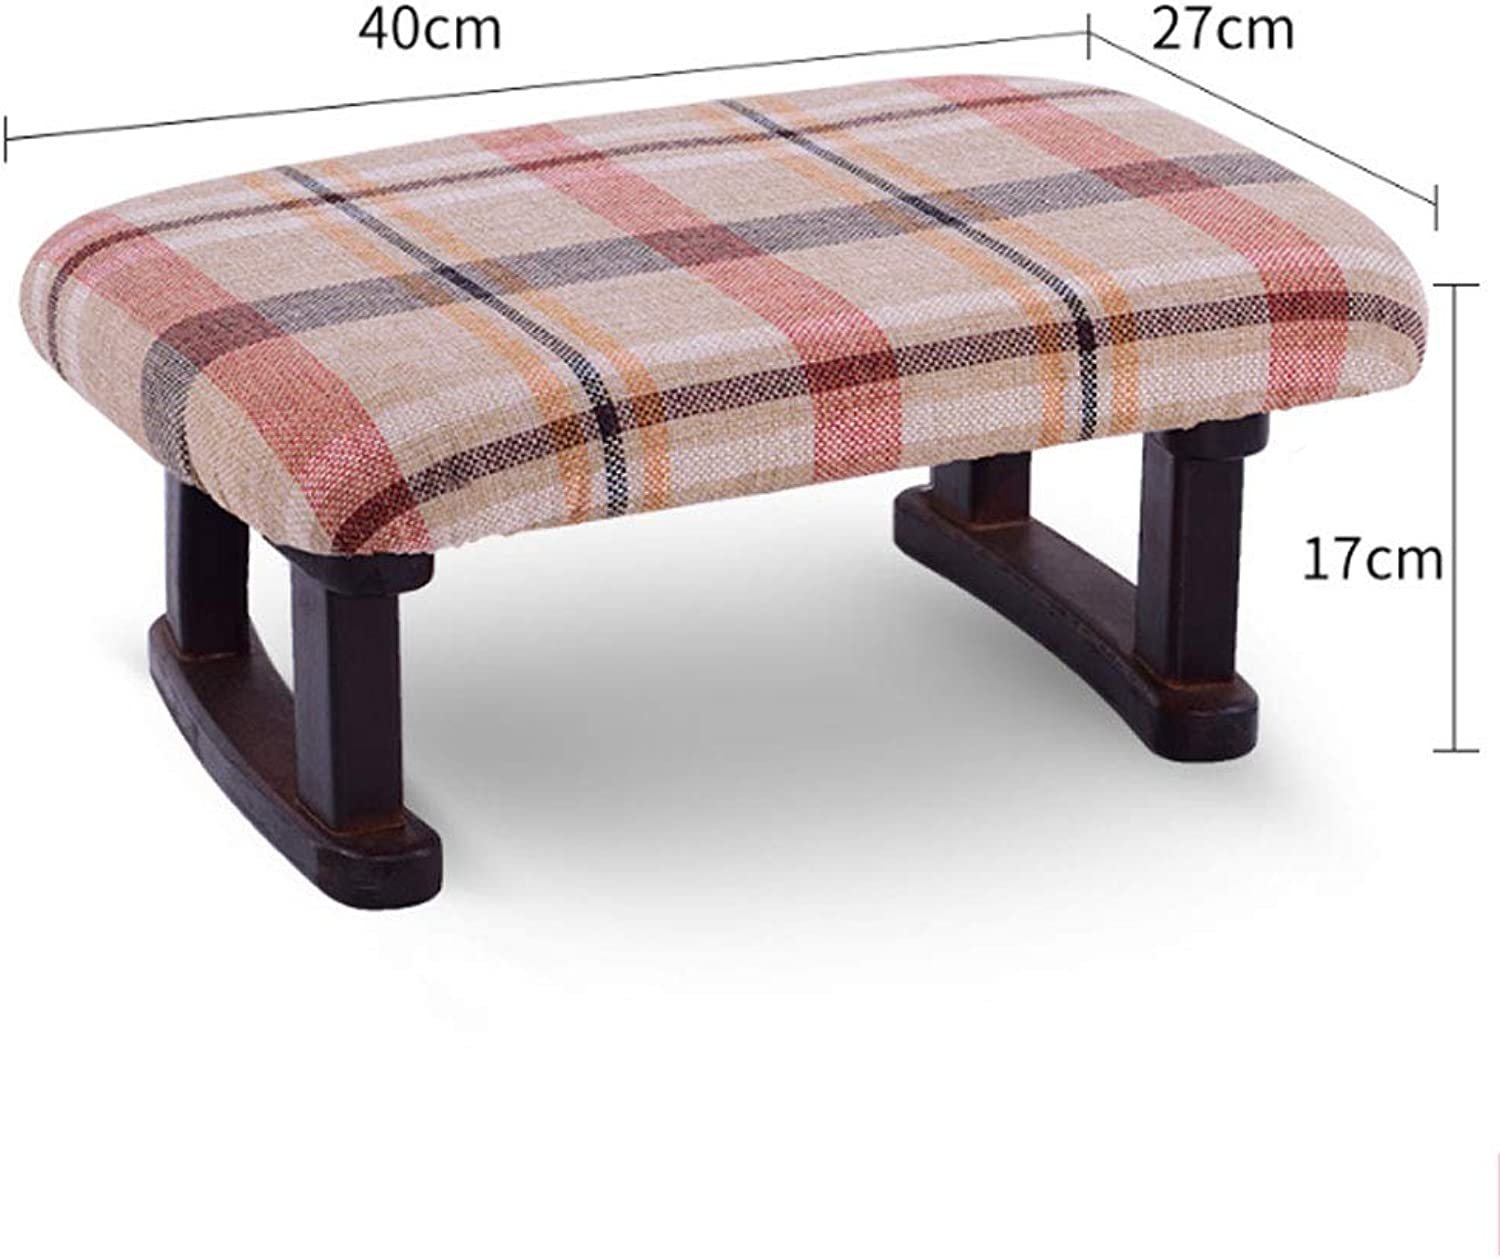 ZXW STOOLS- Home Solid Wood Stool Fashion Creative Sofa Change shoes Bench Fabric Living Room Small Bench (color   Red Grid, Size   40x27x17cm)